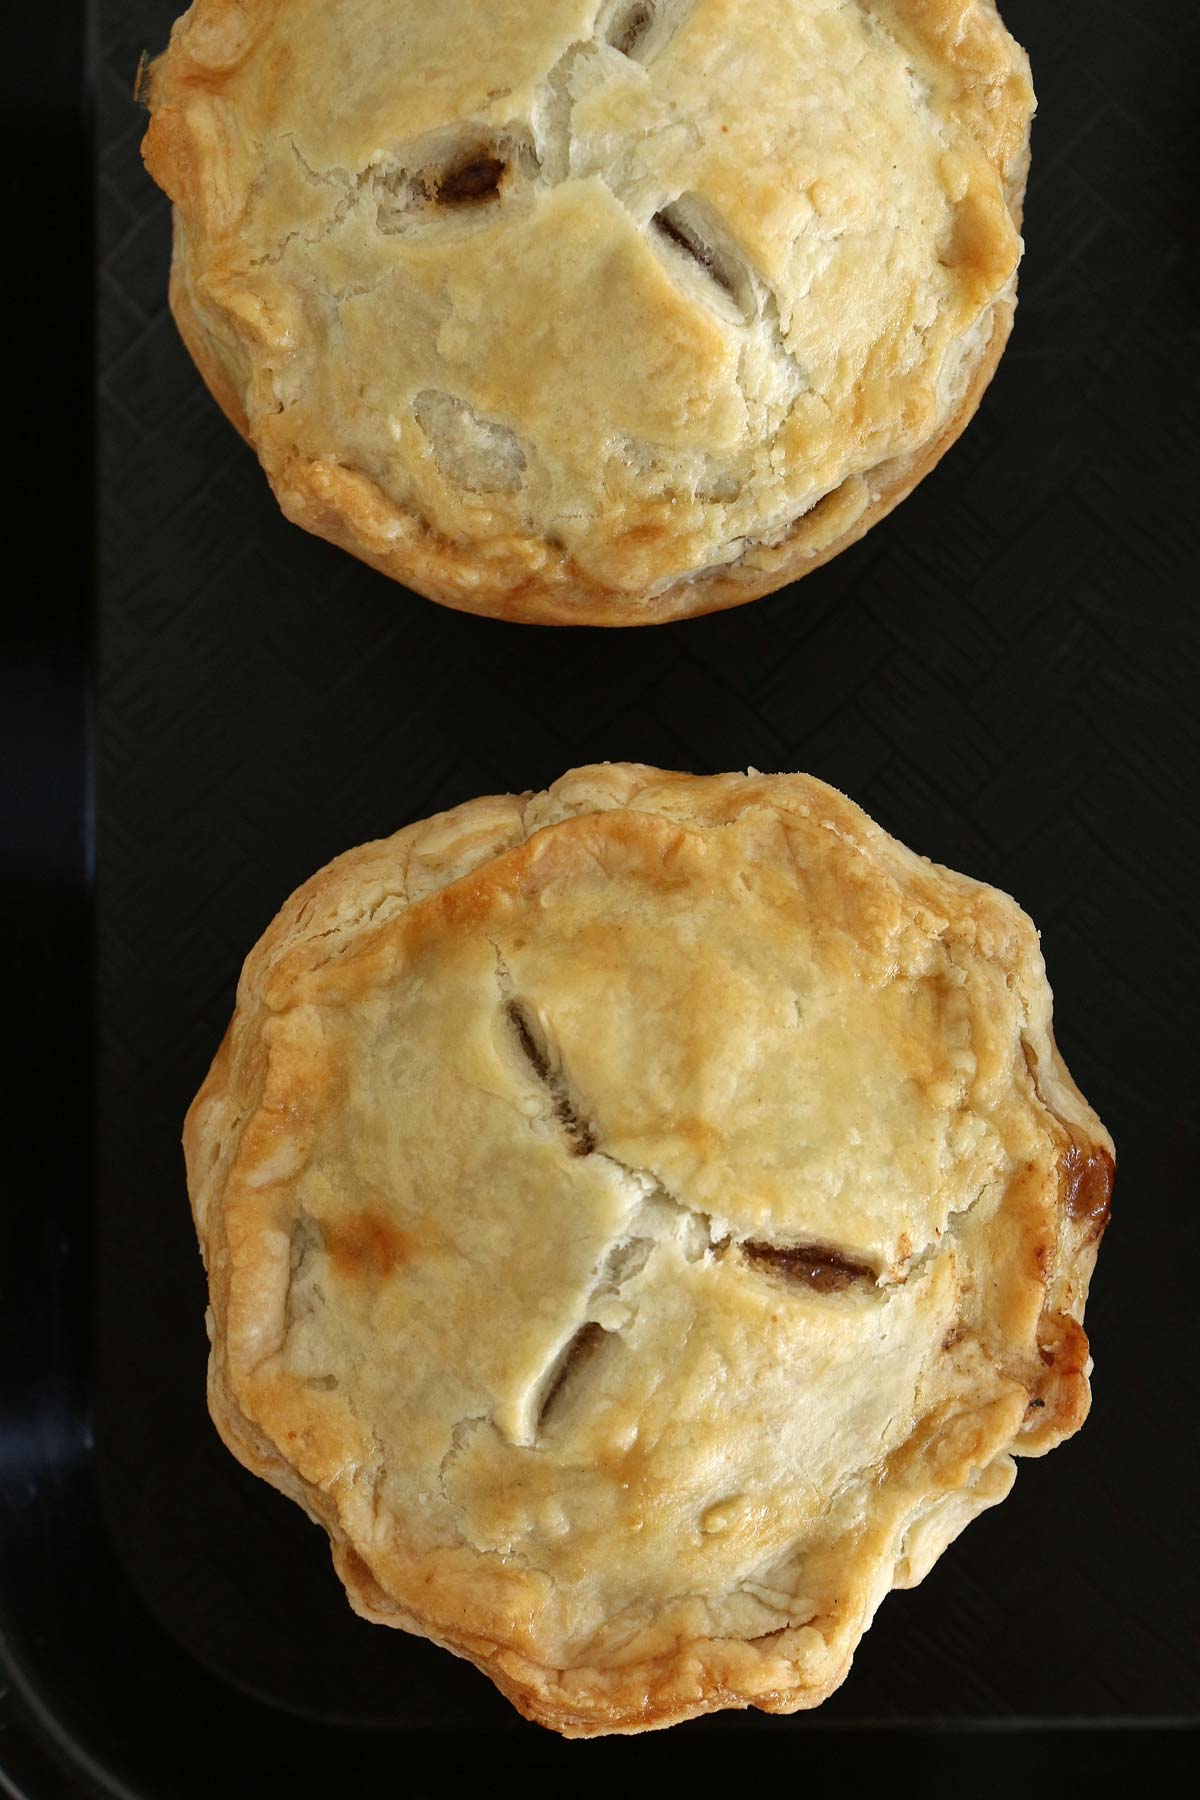 Two baked mini pies with crimped edges and 3 vents on a black background.